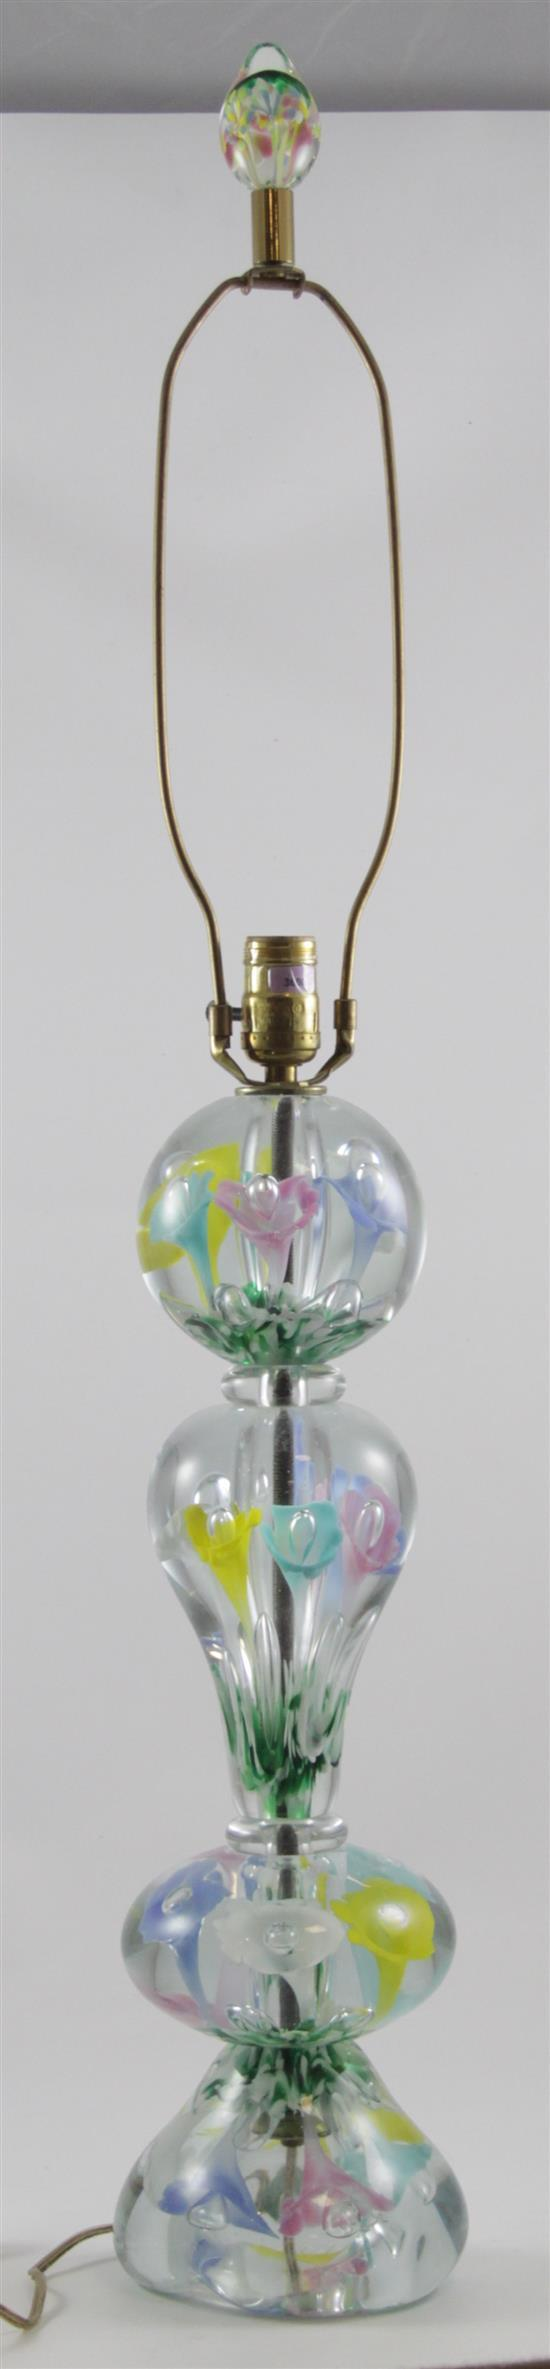 GIBSON TABLE LAMP WITH MULTI-COLORED TRUMPET FLOWERS, 38.5